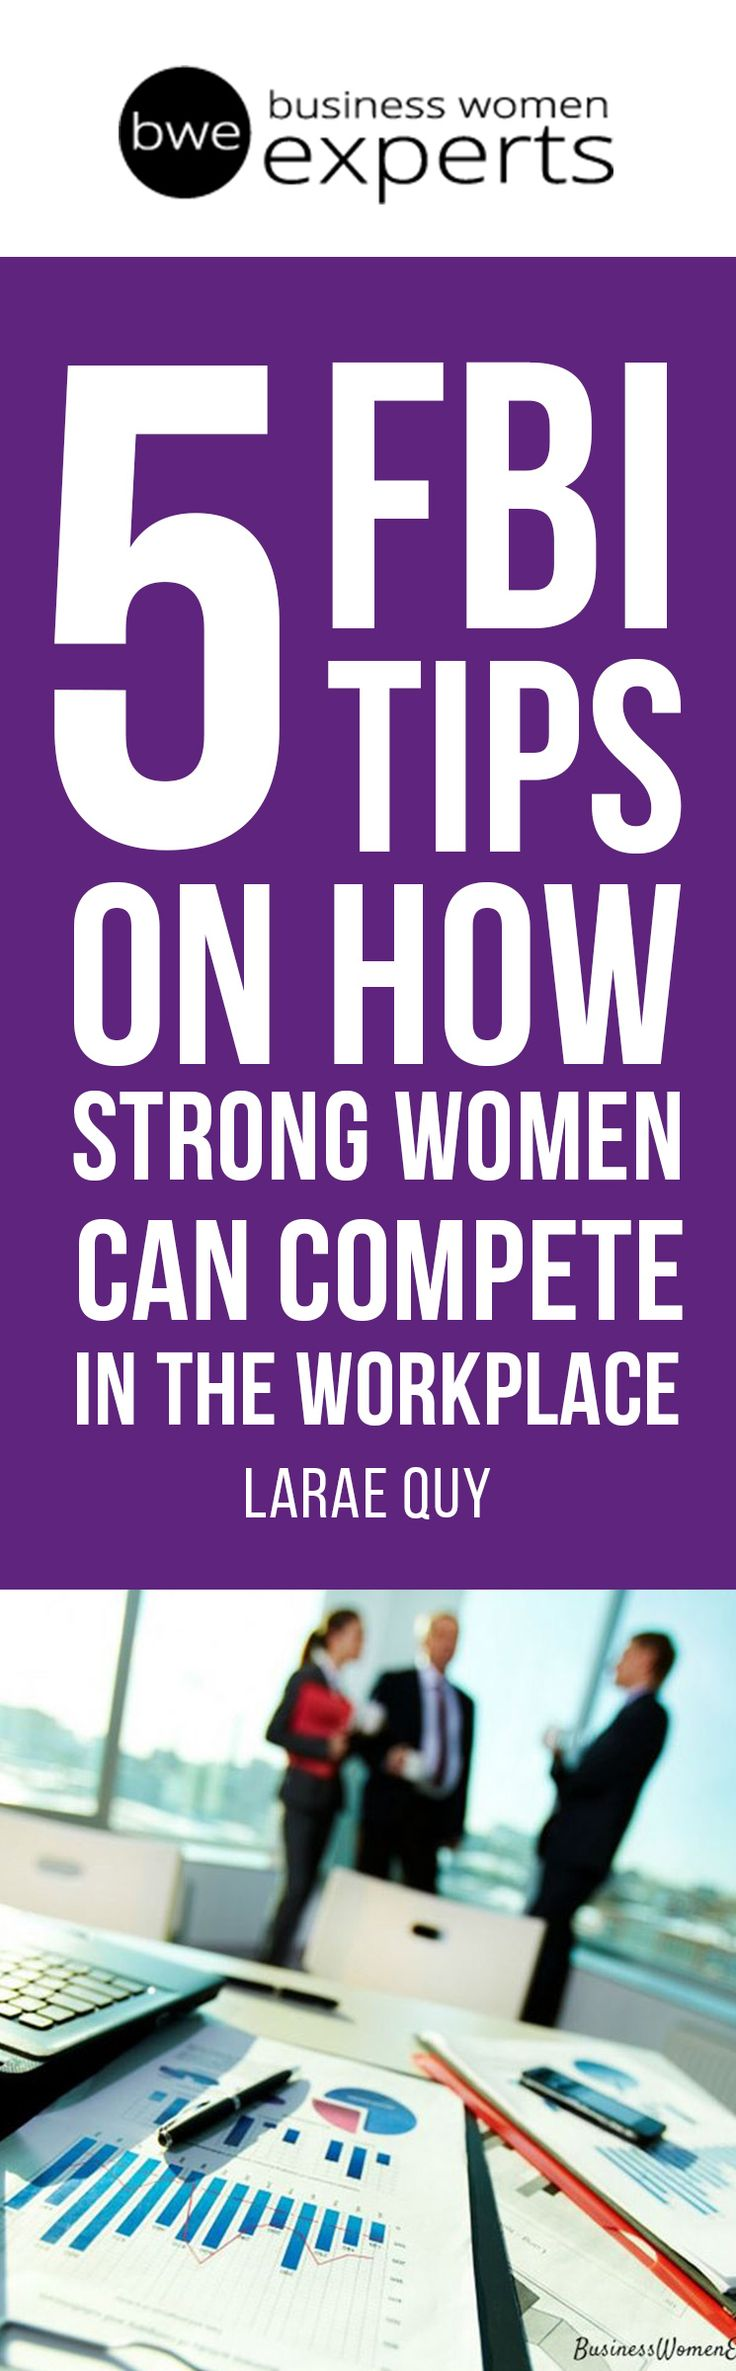 Leadership expert and ex-FBI agent, LaRae Quy, share 5 great tips on how strong women can complete in the workplace. #leadership #career